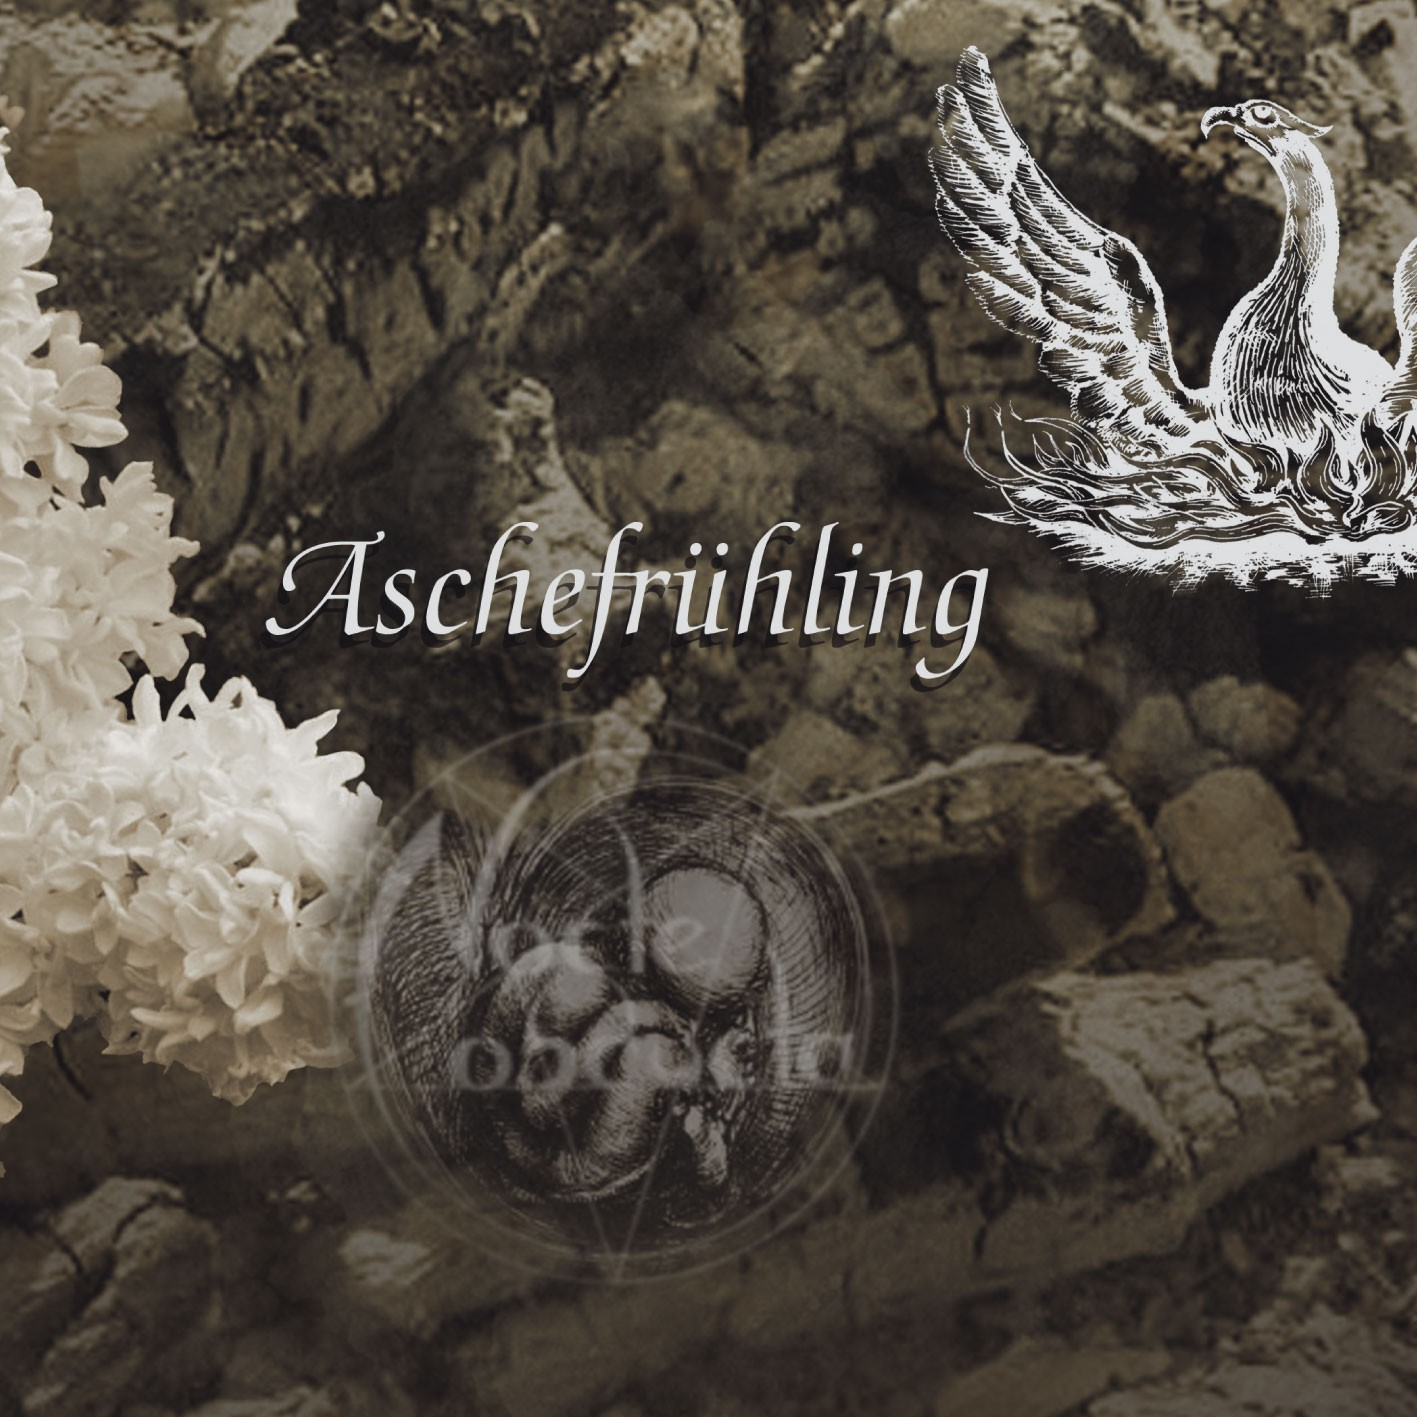 NOCTE OBDUCTA - Aschefrühling  (CD-Single)